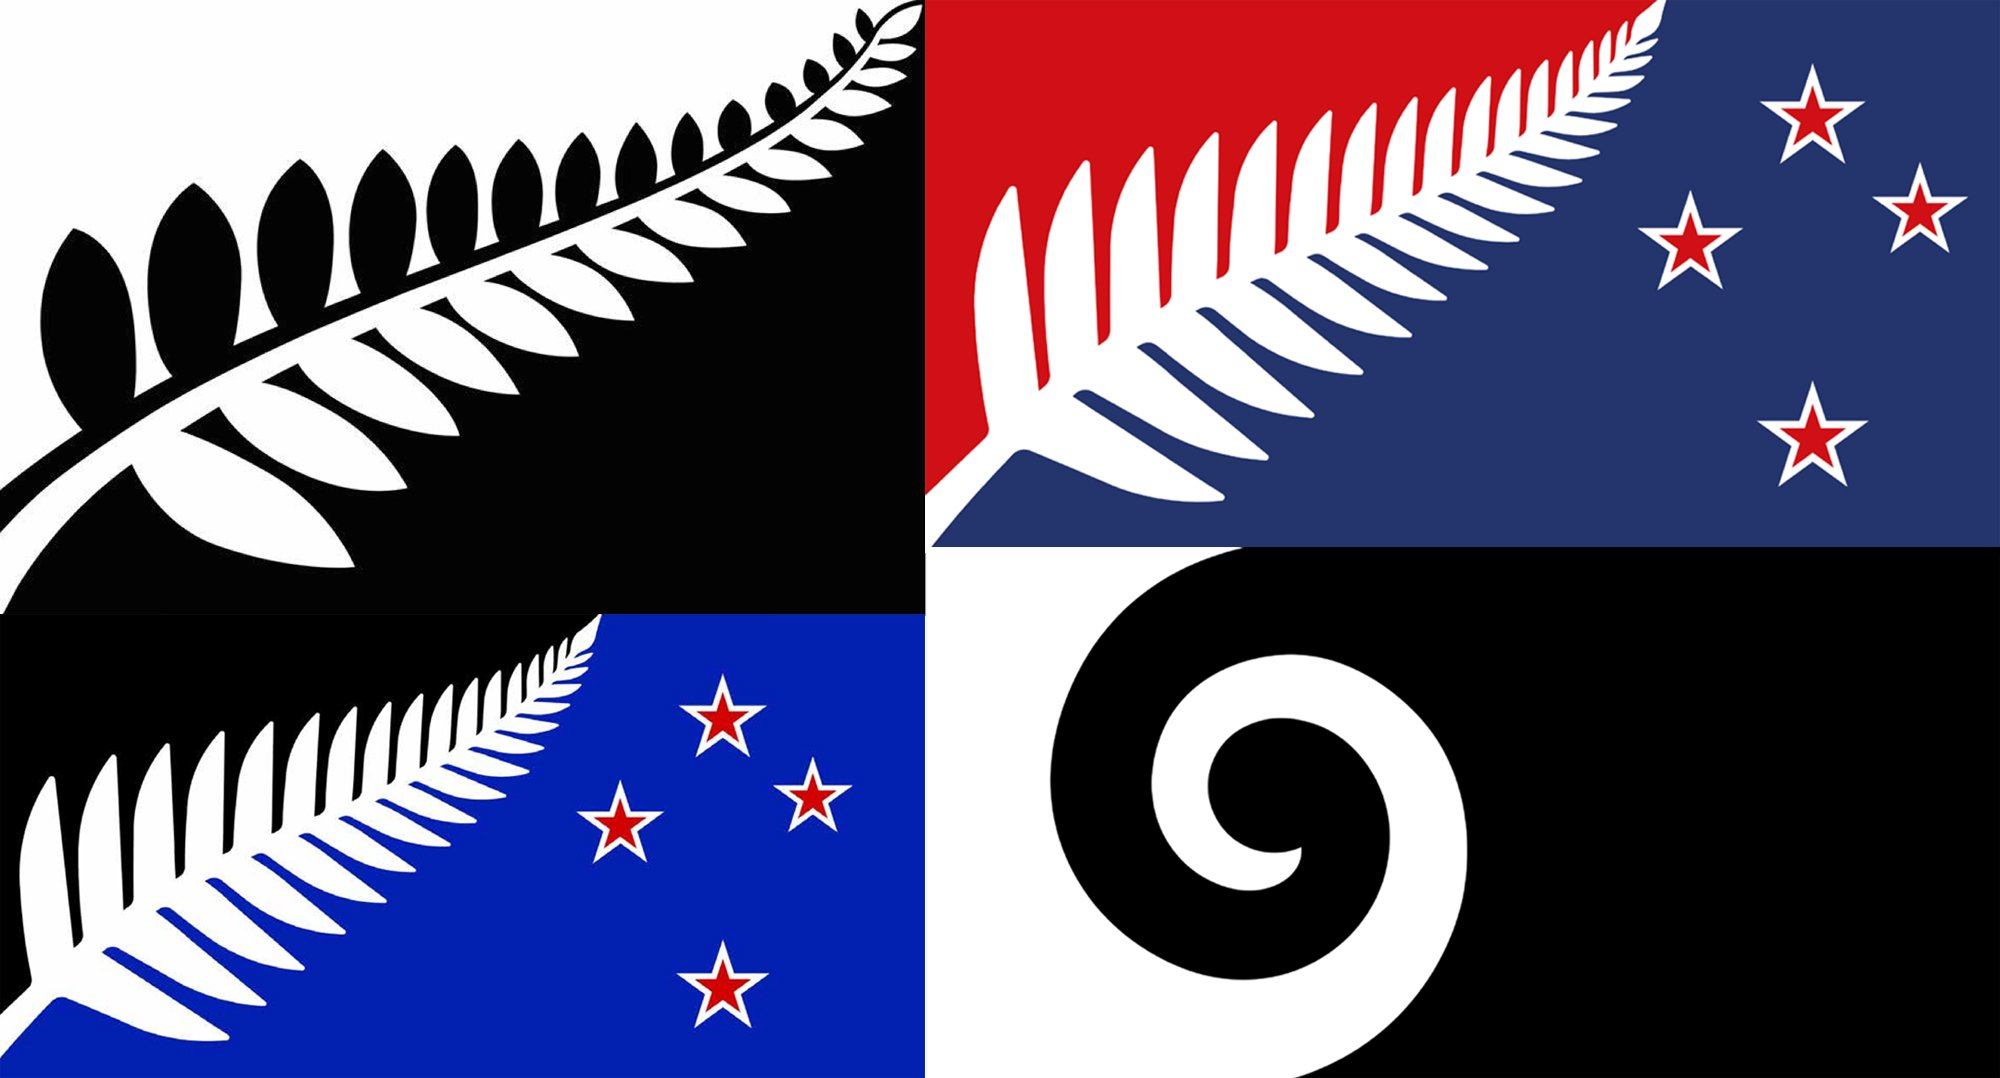 new zealand flag - photo #15